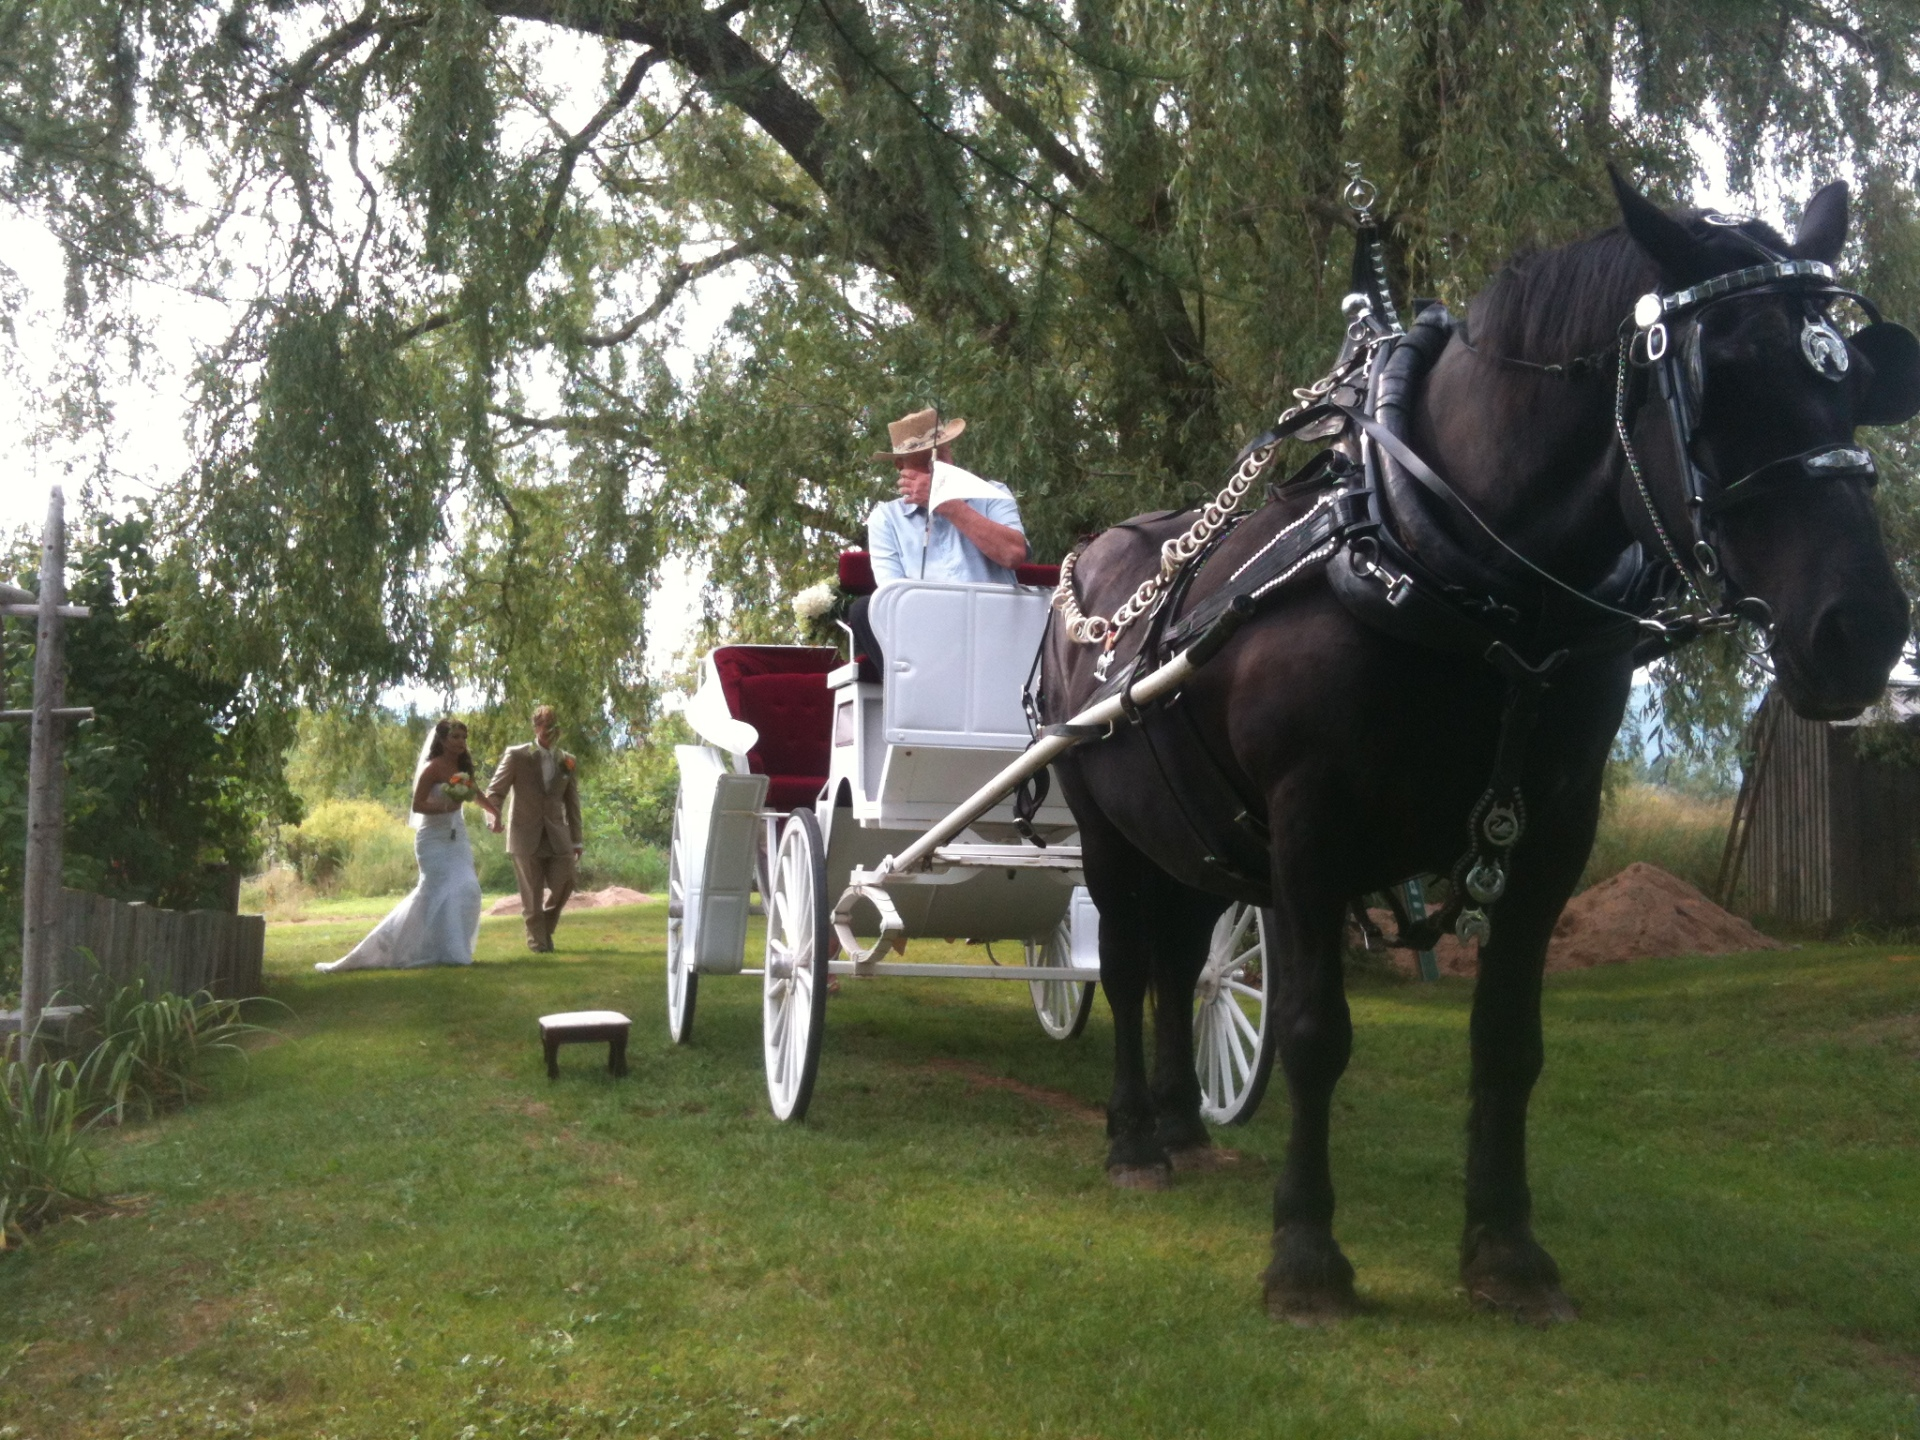 Bride & Groom with Horse & Carriage